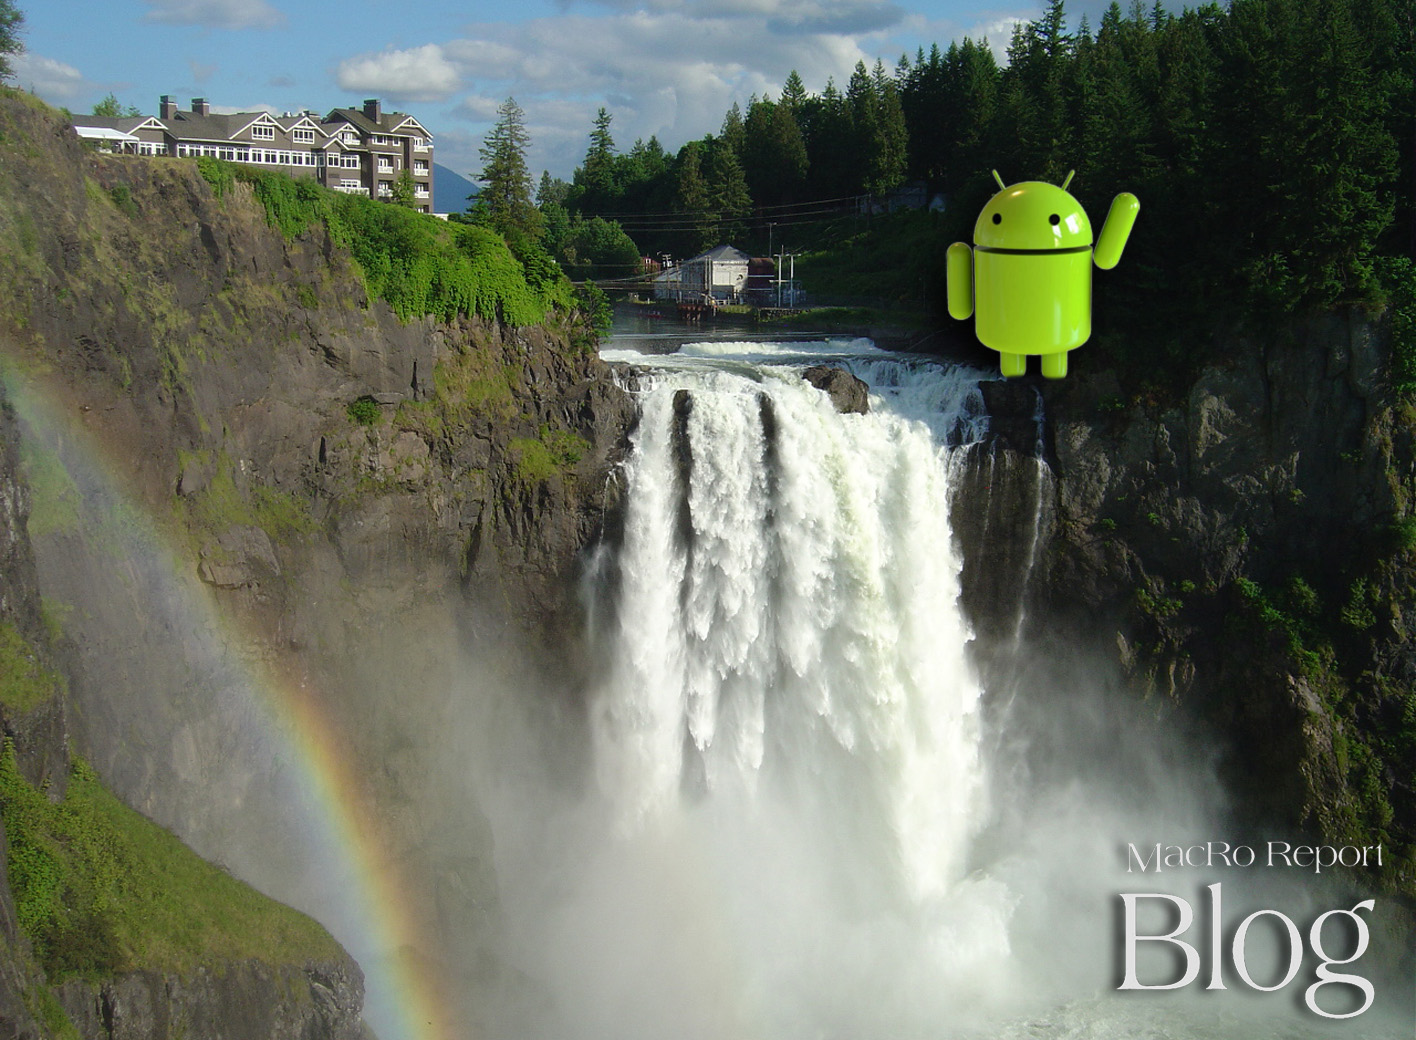 I Left My Droid at Snoqualmie Falls